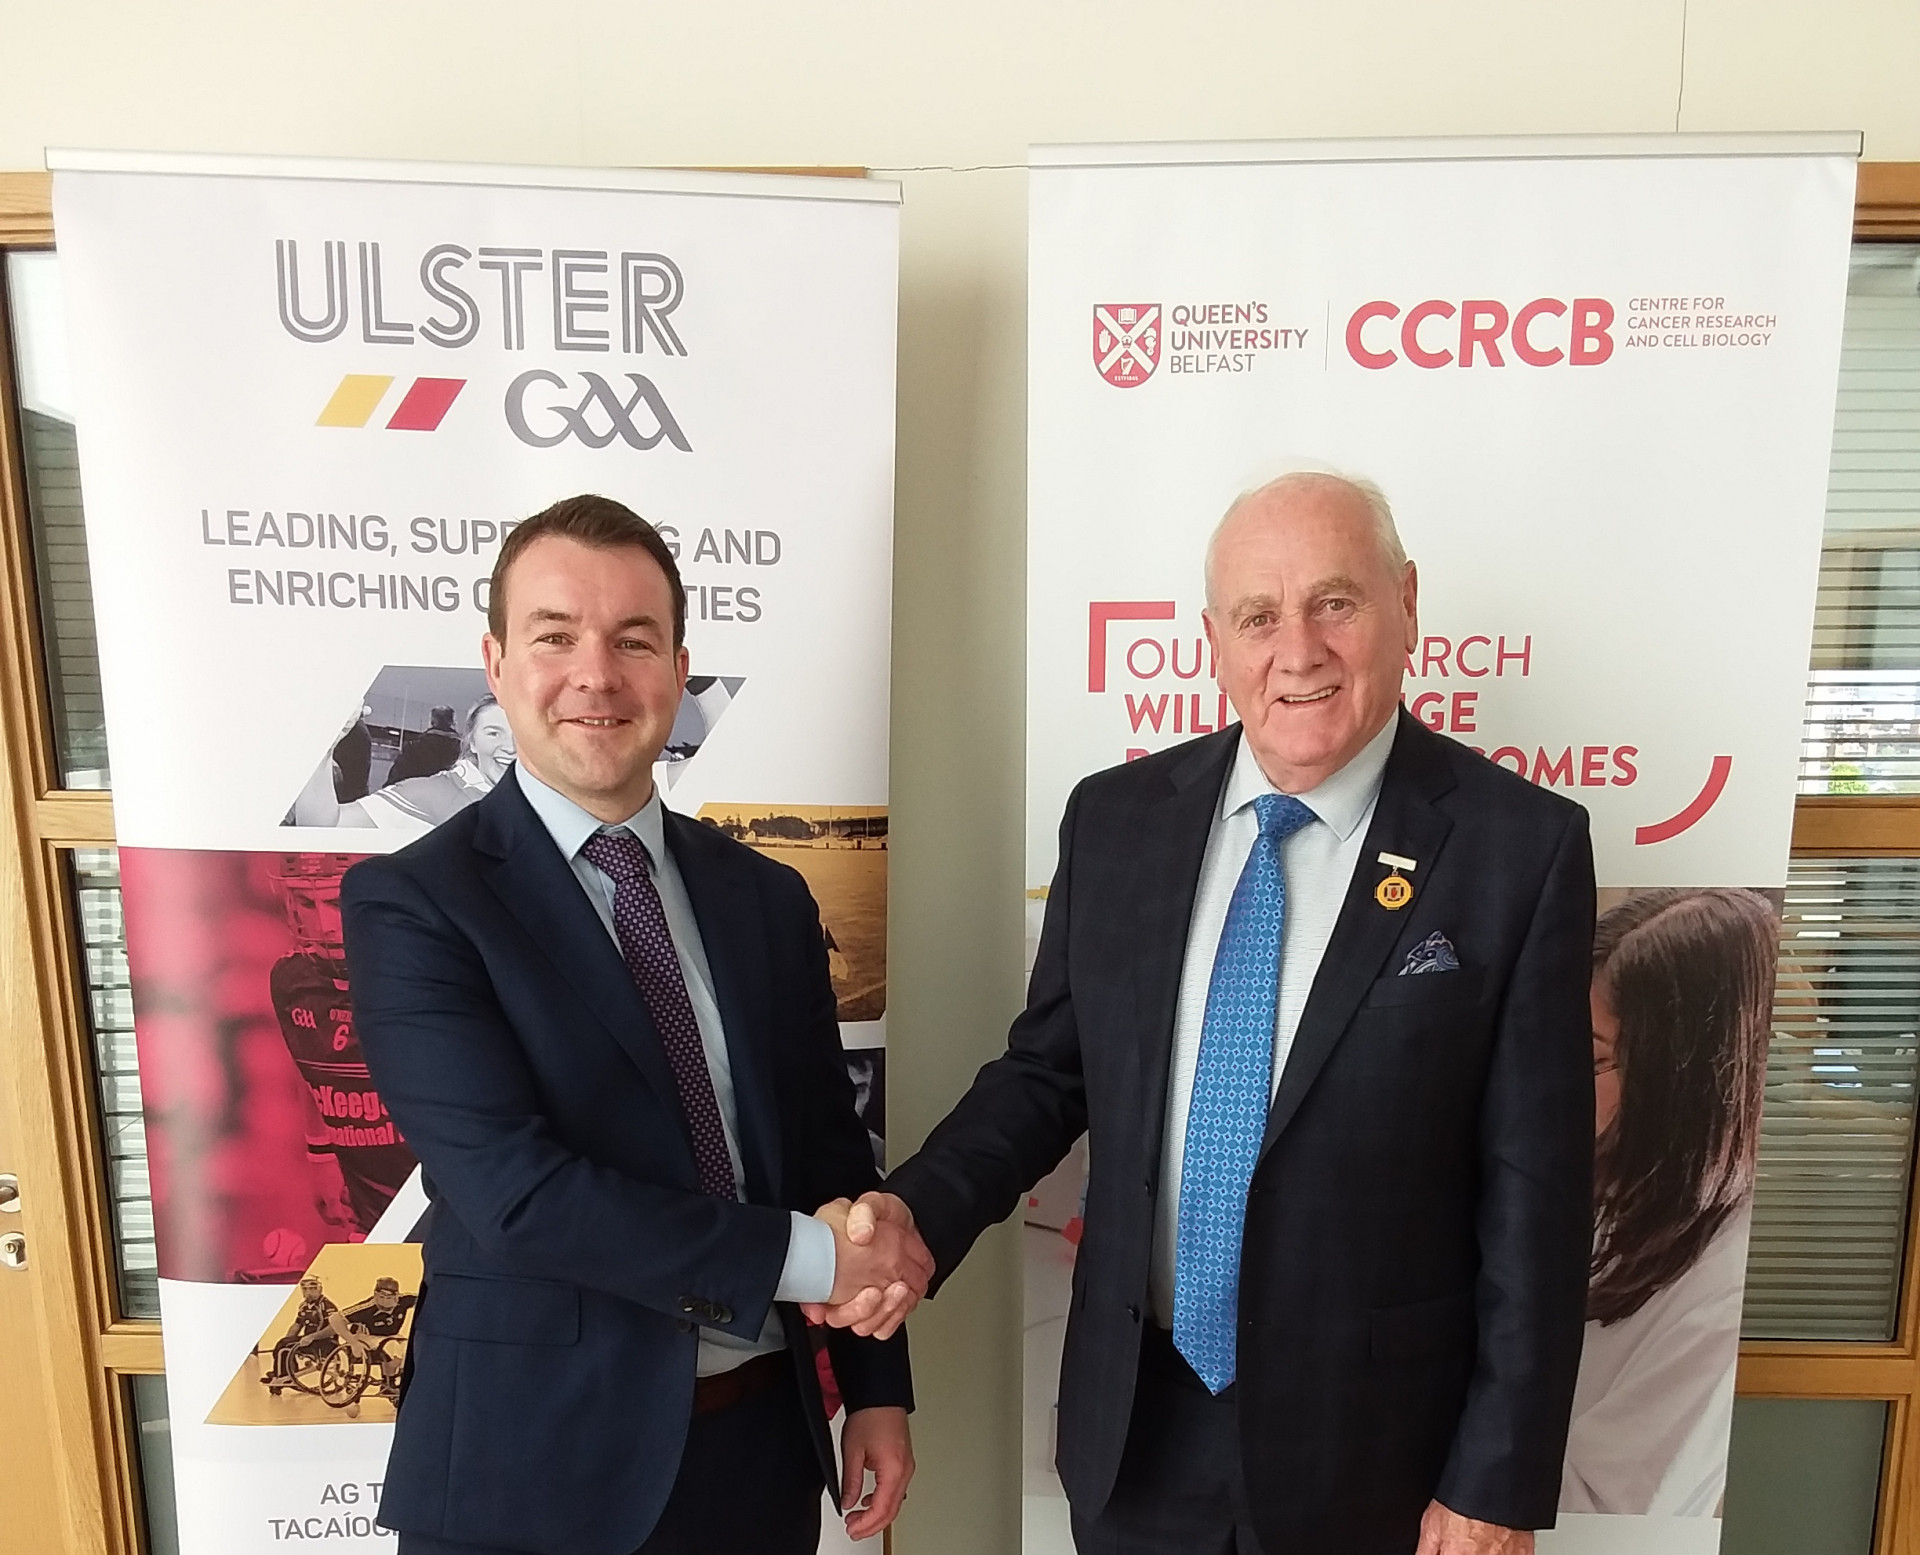 Help Ulster GAA support prostate cancer research